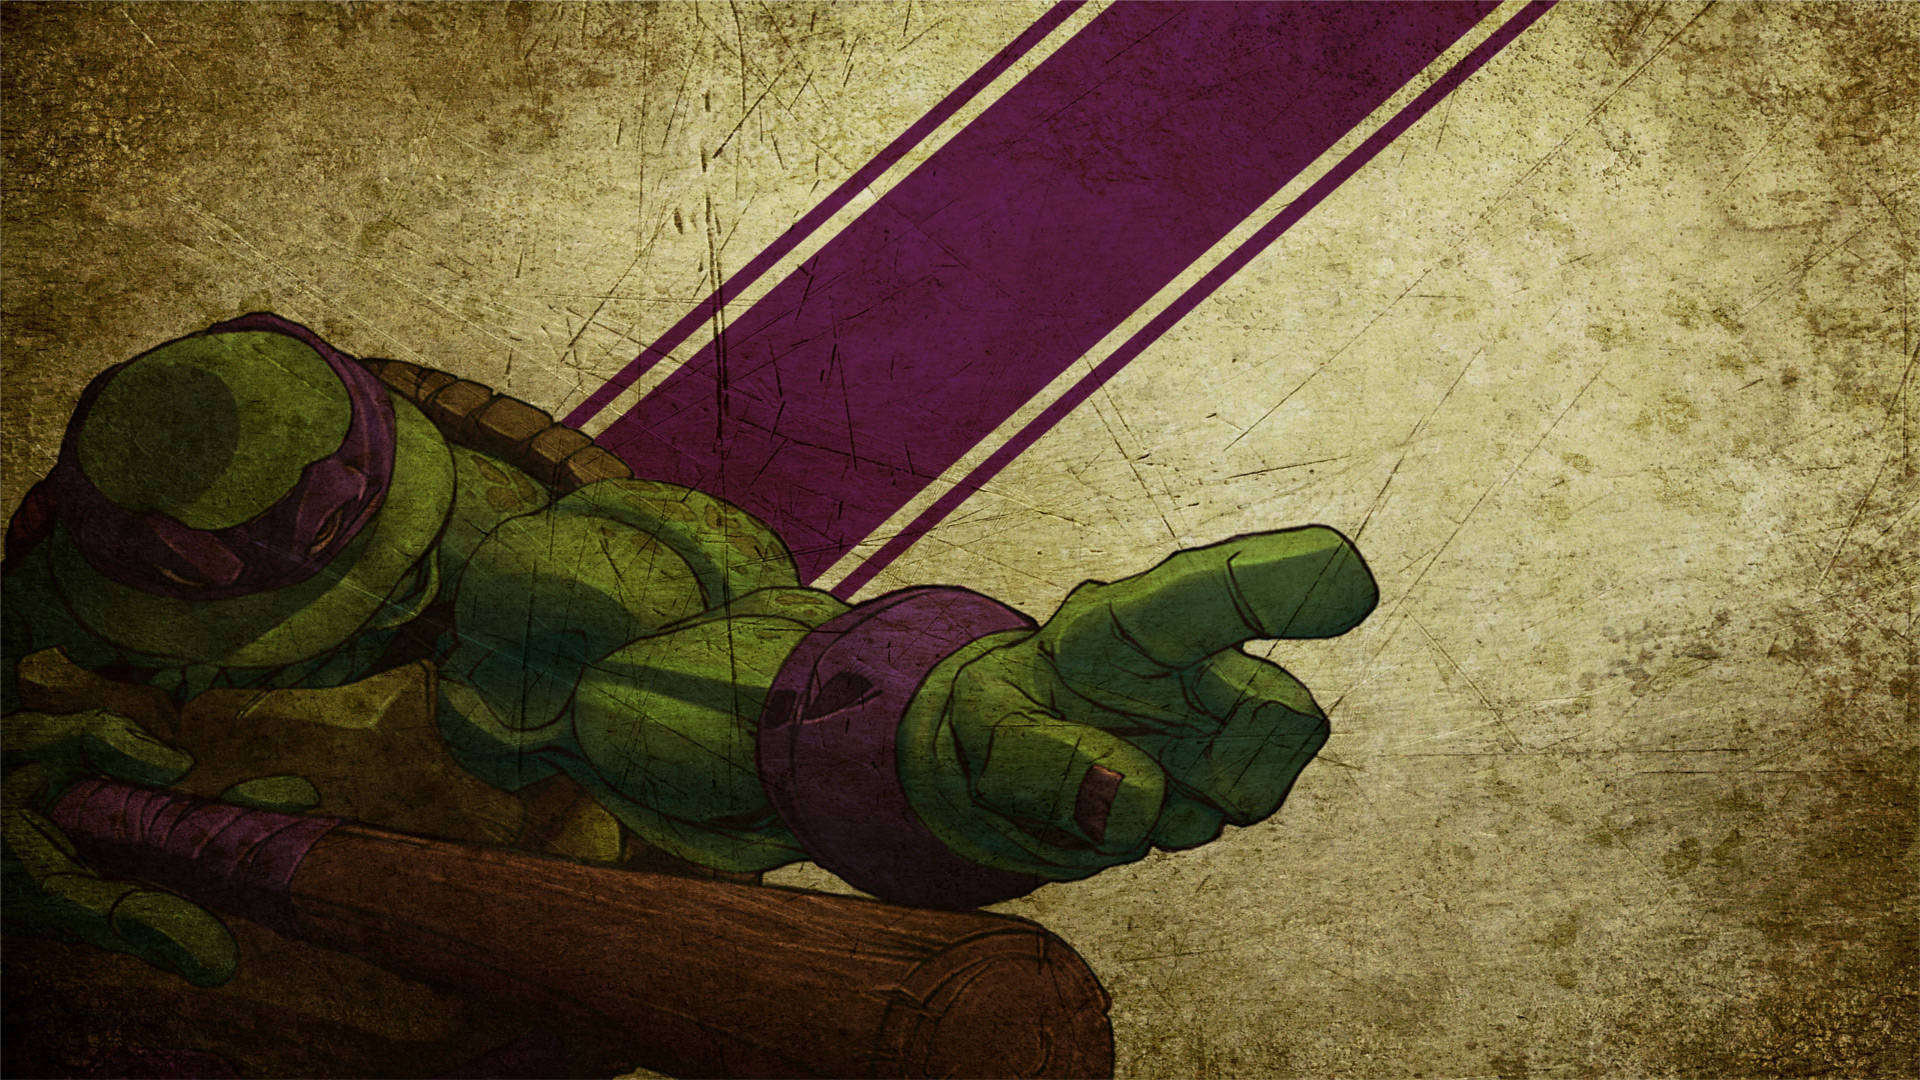 IDonatello